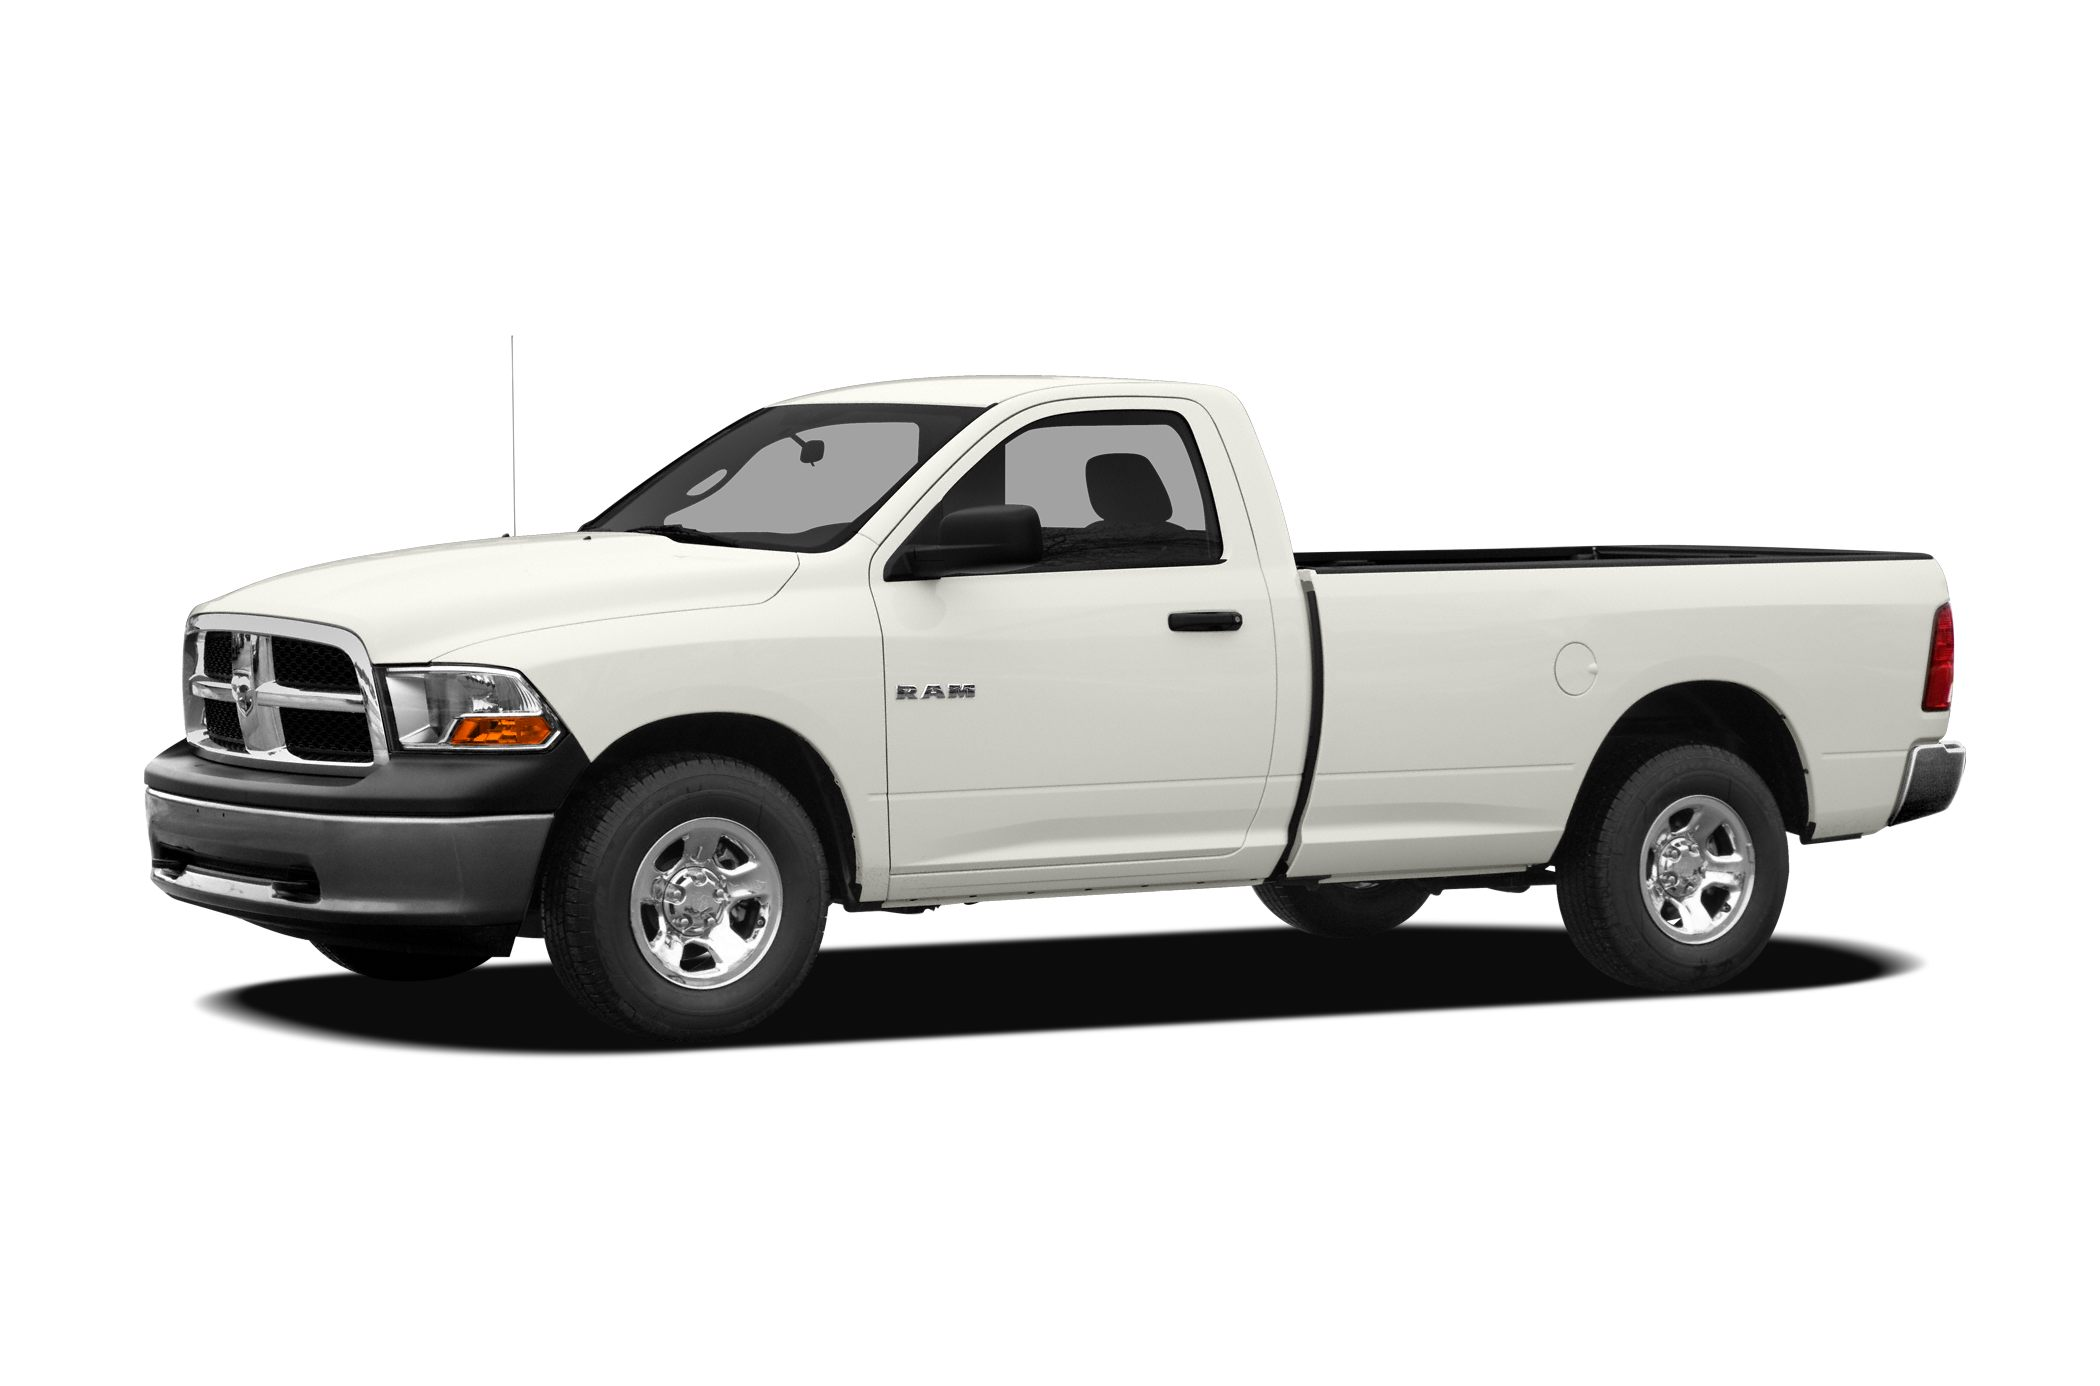 2010 Dodge Ram 1500 SLT Crew Cab Pickup for sale in Longmont for $26,500 with 73,189 miles.